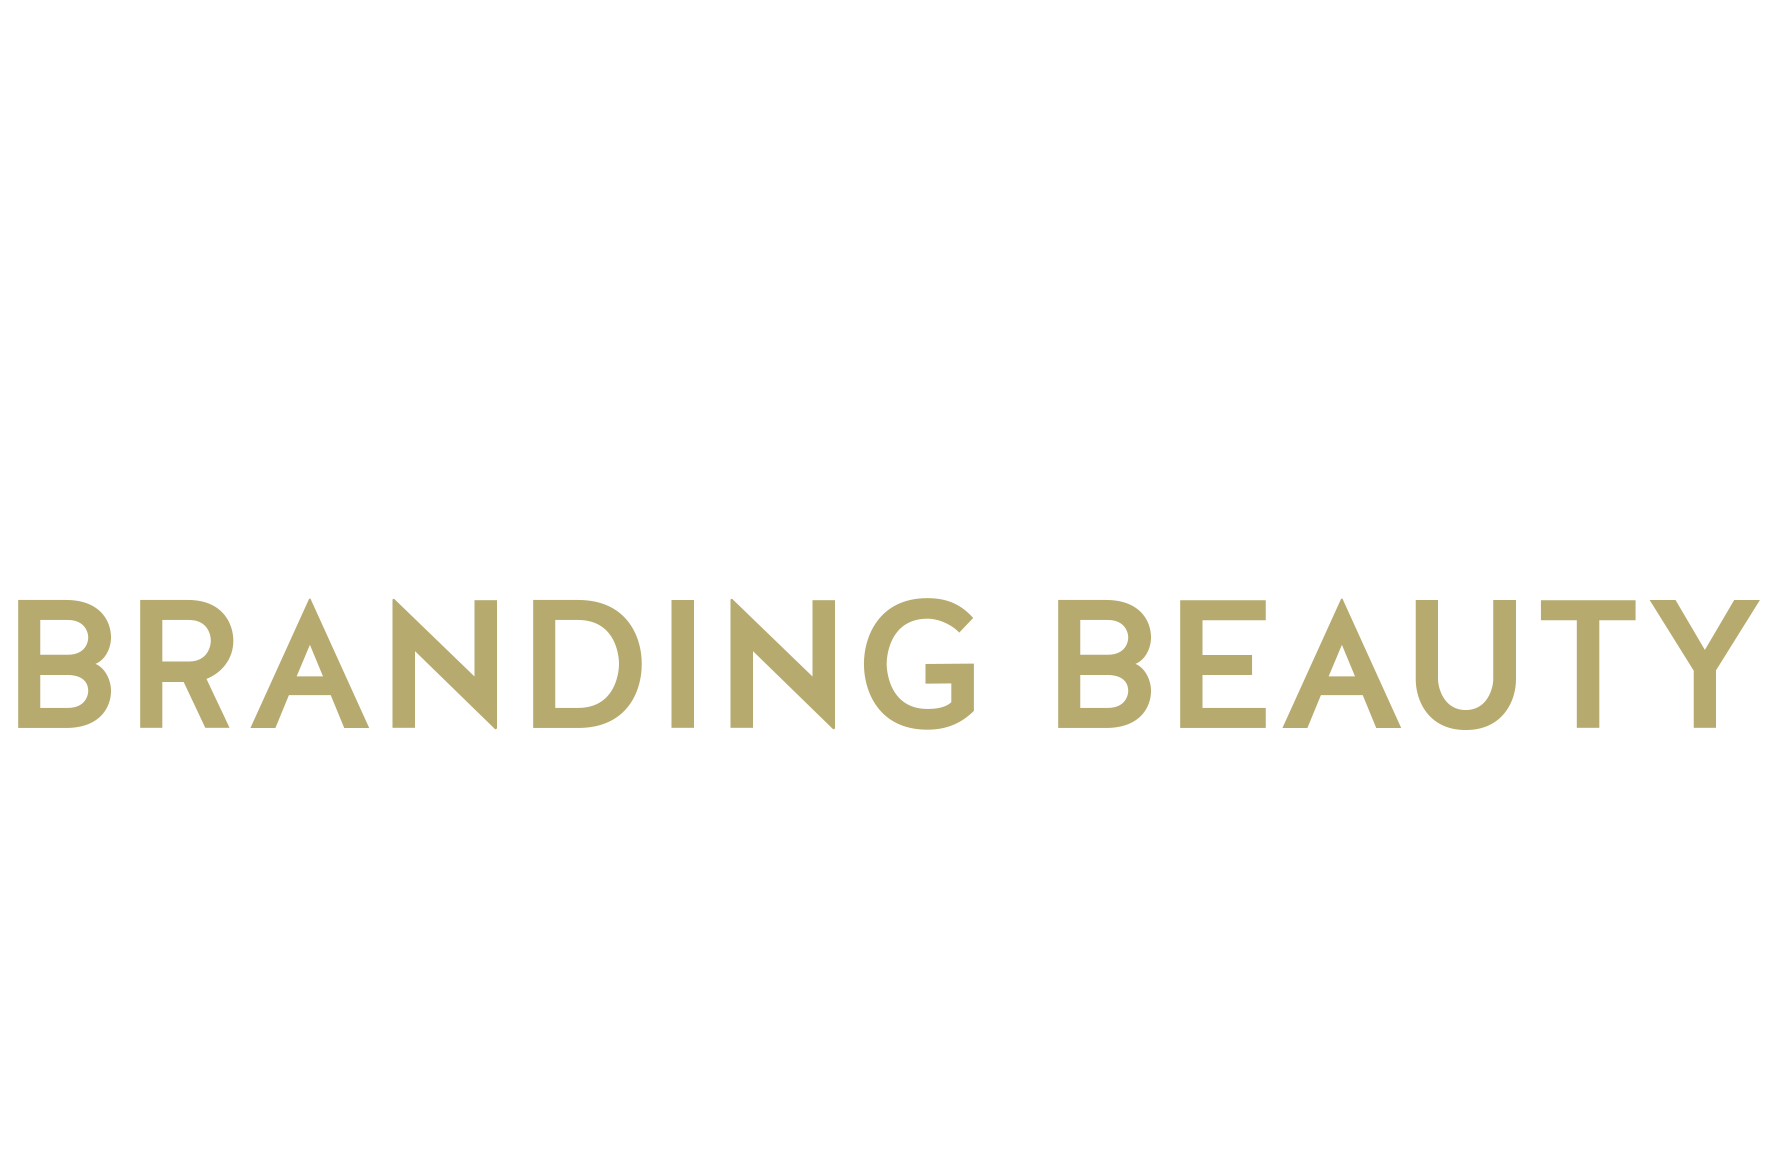 brand-beautyTEXT.png